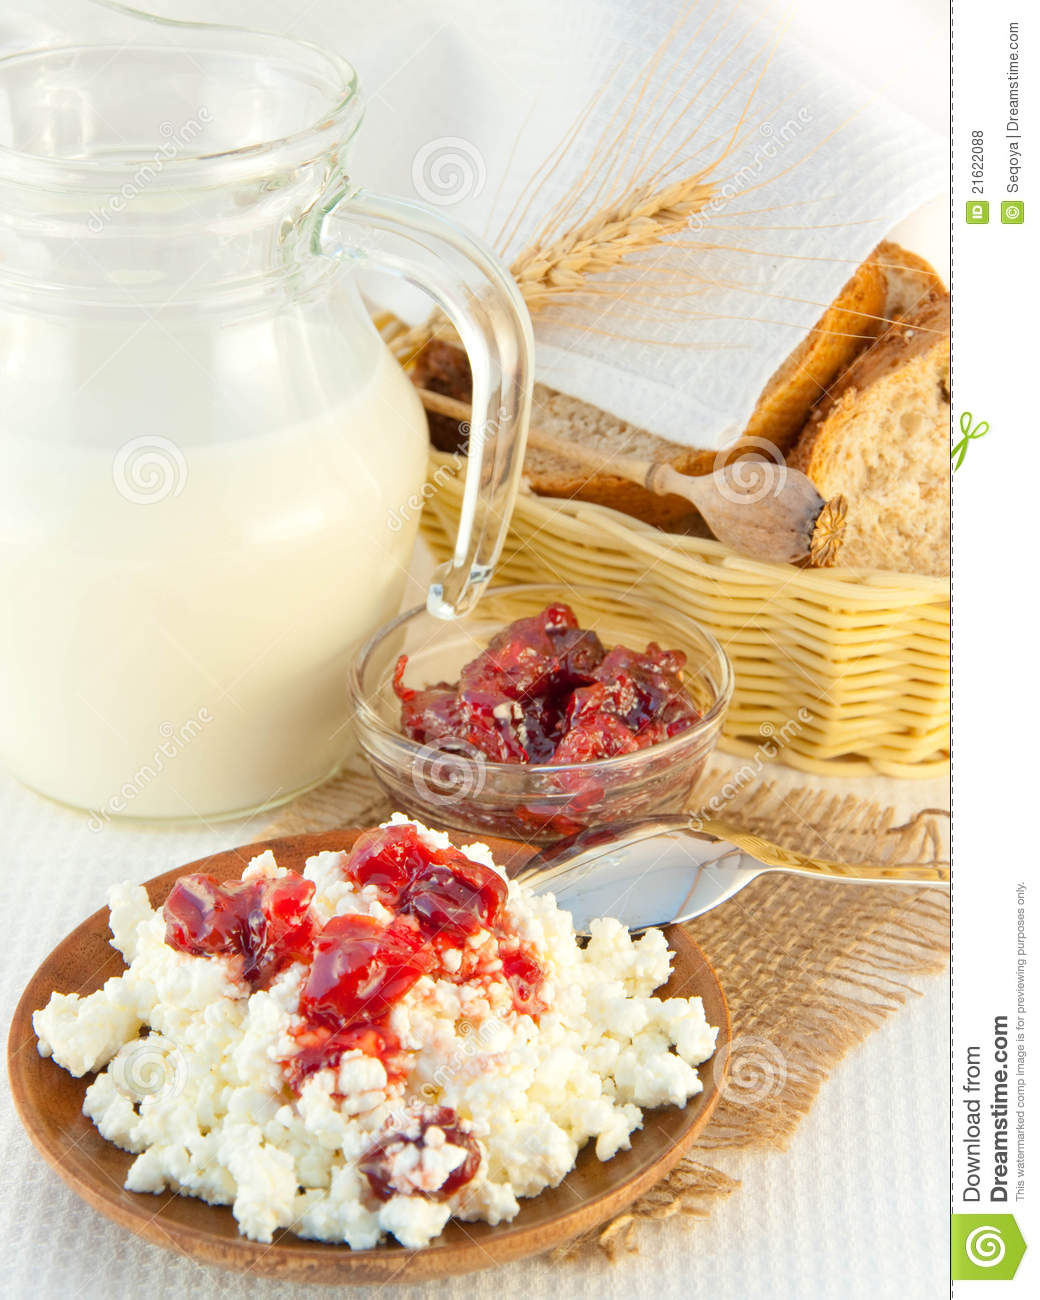 Cottage Cheese With Jam: Jug With Milk And Cottage Cheese Royalty Free Stock Photos